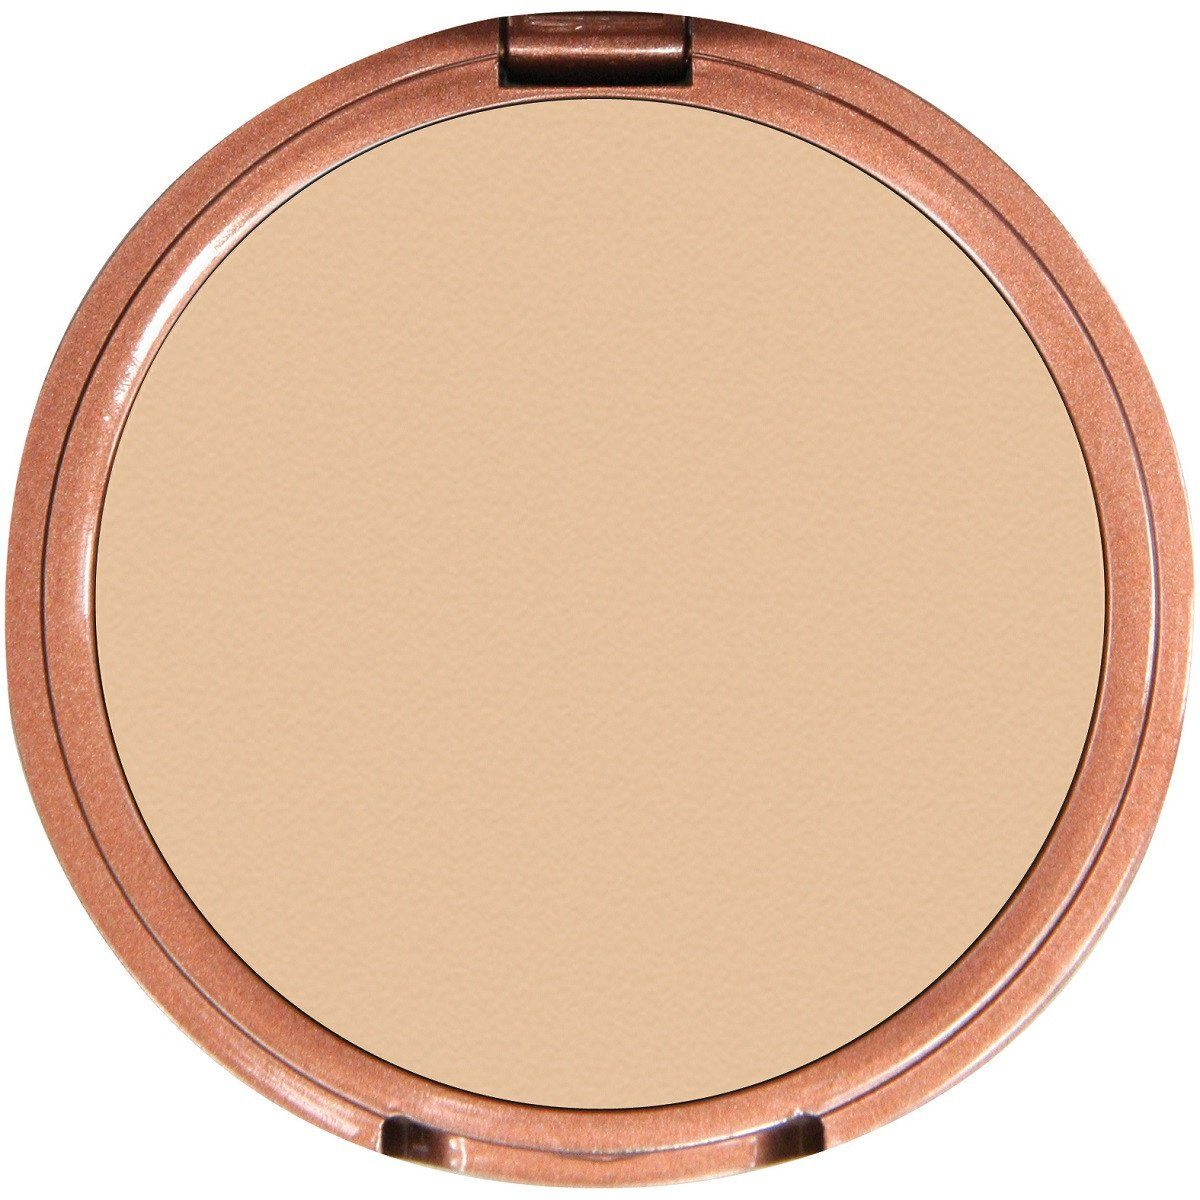 Beauty & Skin Care - Mineral Fusion - Pressed Powder Foundation -Warm 2 (for Medium Skin With Golden Undertones), 9g